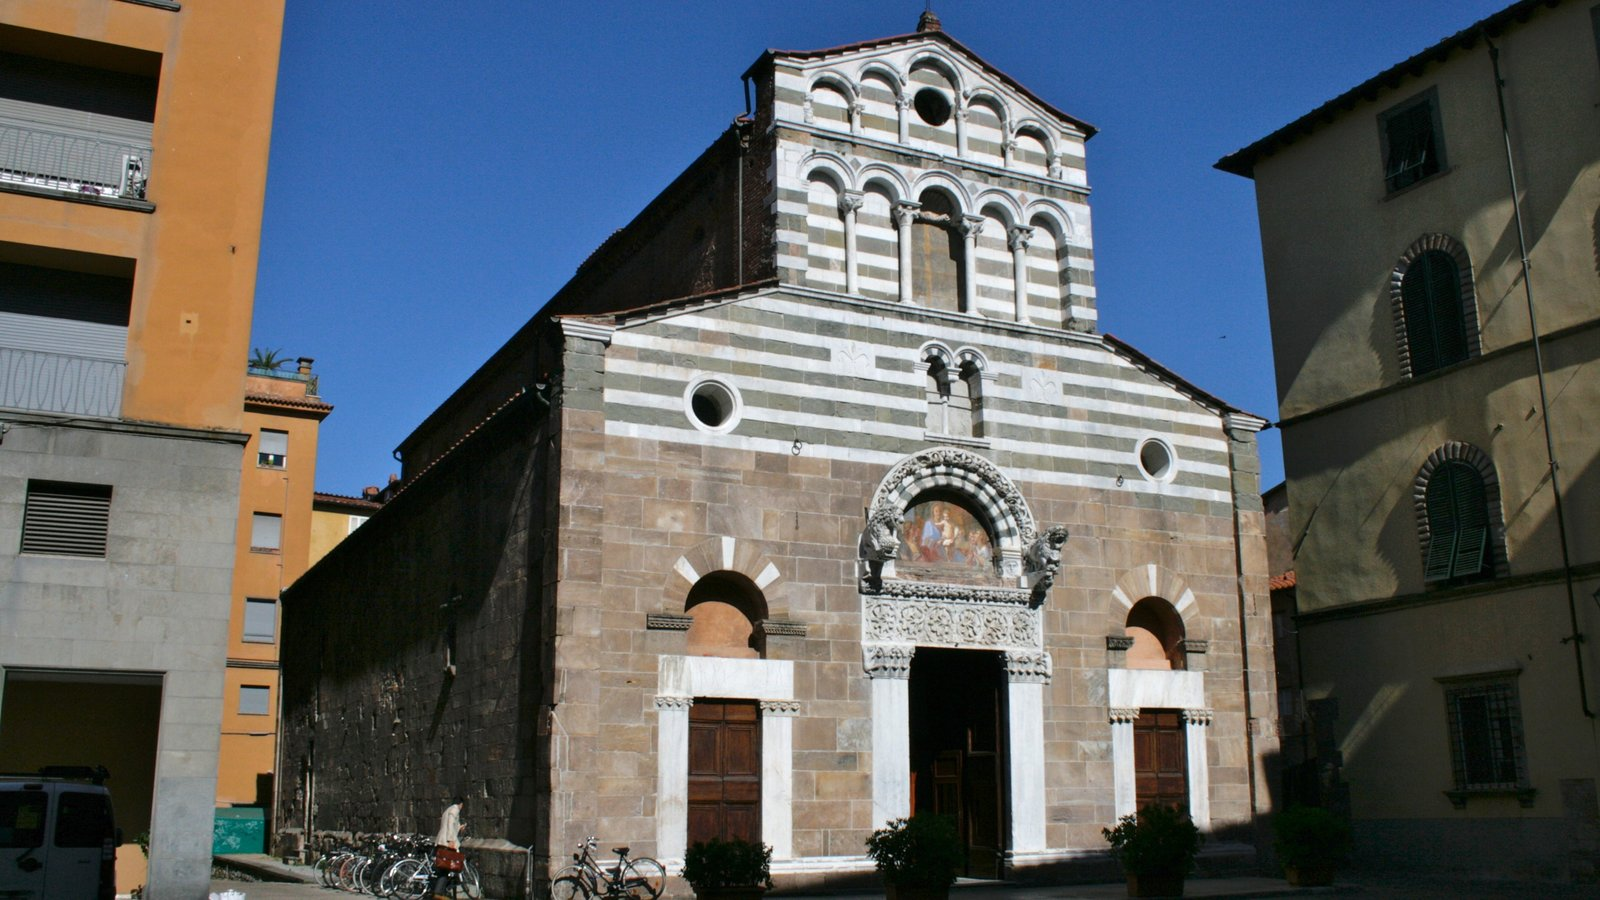 Viareggio which includes a church or cathedral, religious aspects and heritage architecture